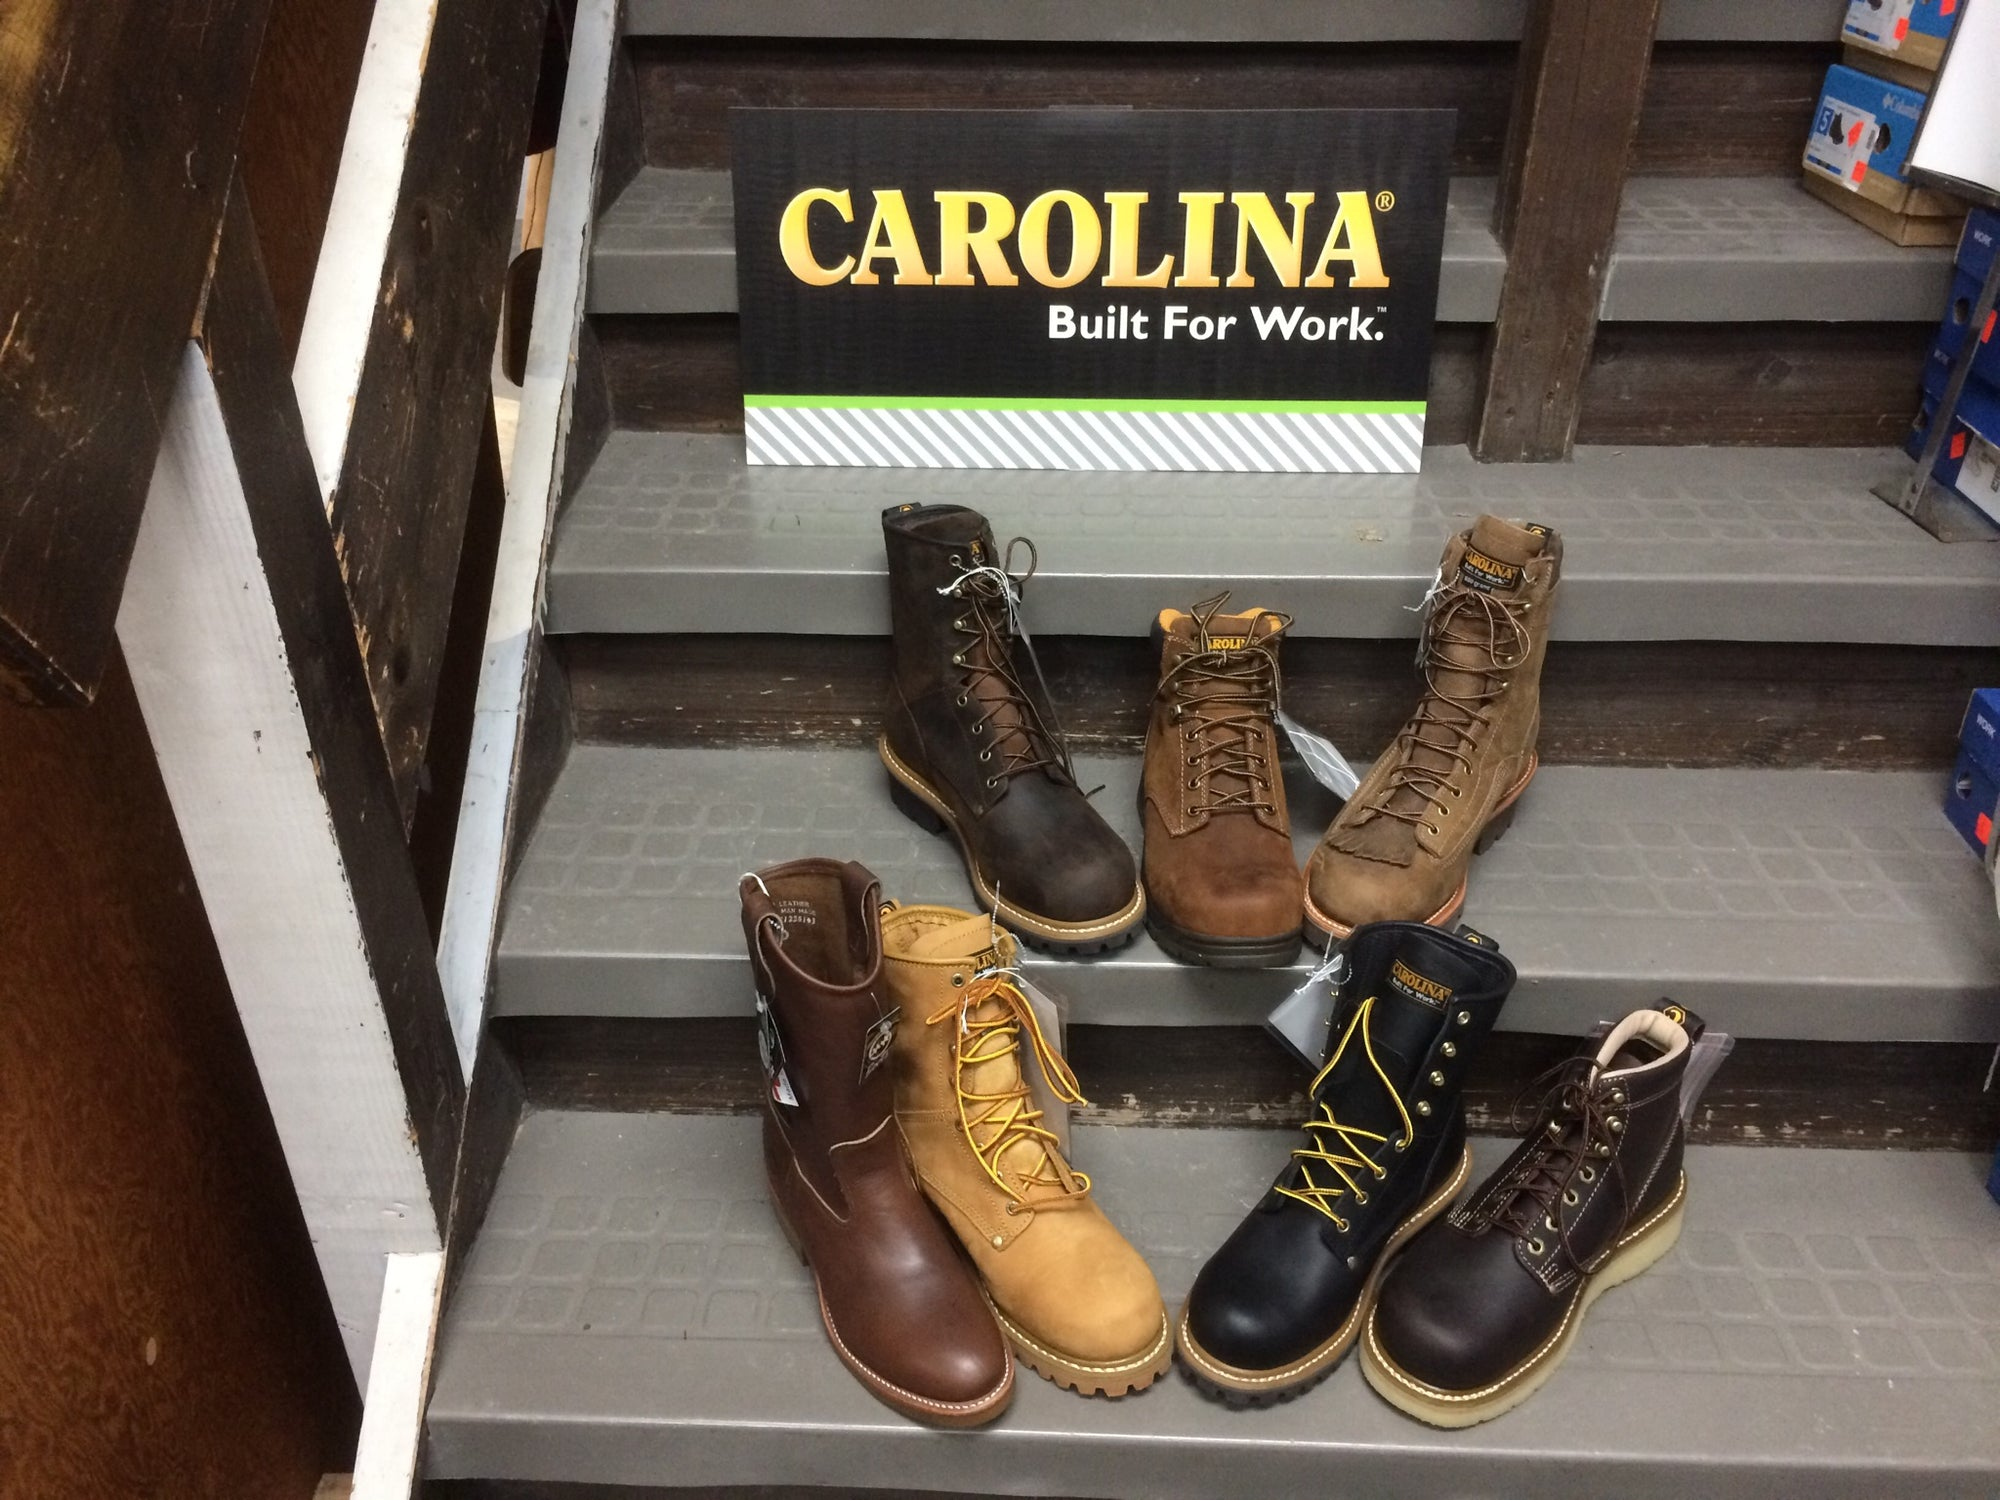 Carolina Shoes.  Built For Work